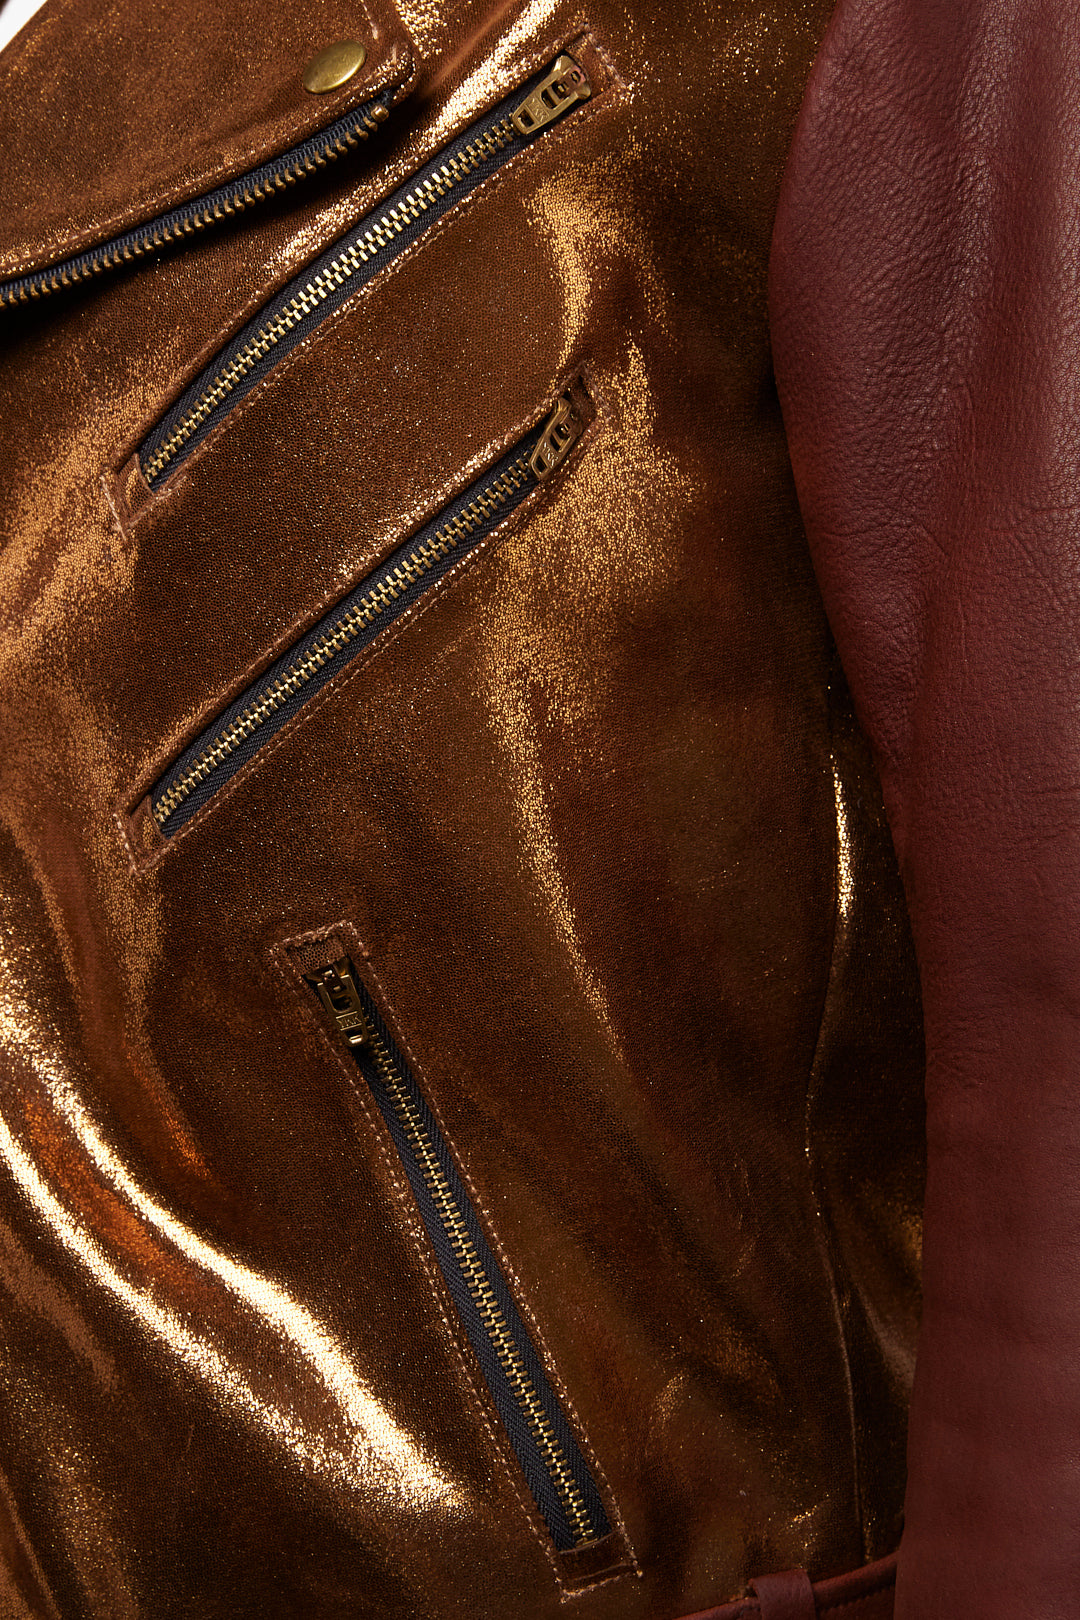 DOUBLE ZIPPER LEATHER JACKETS IN HONEYSUCKLE